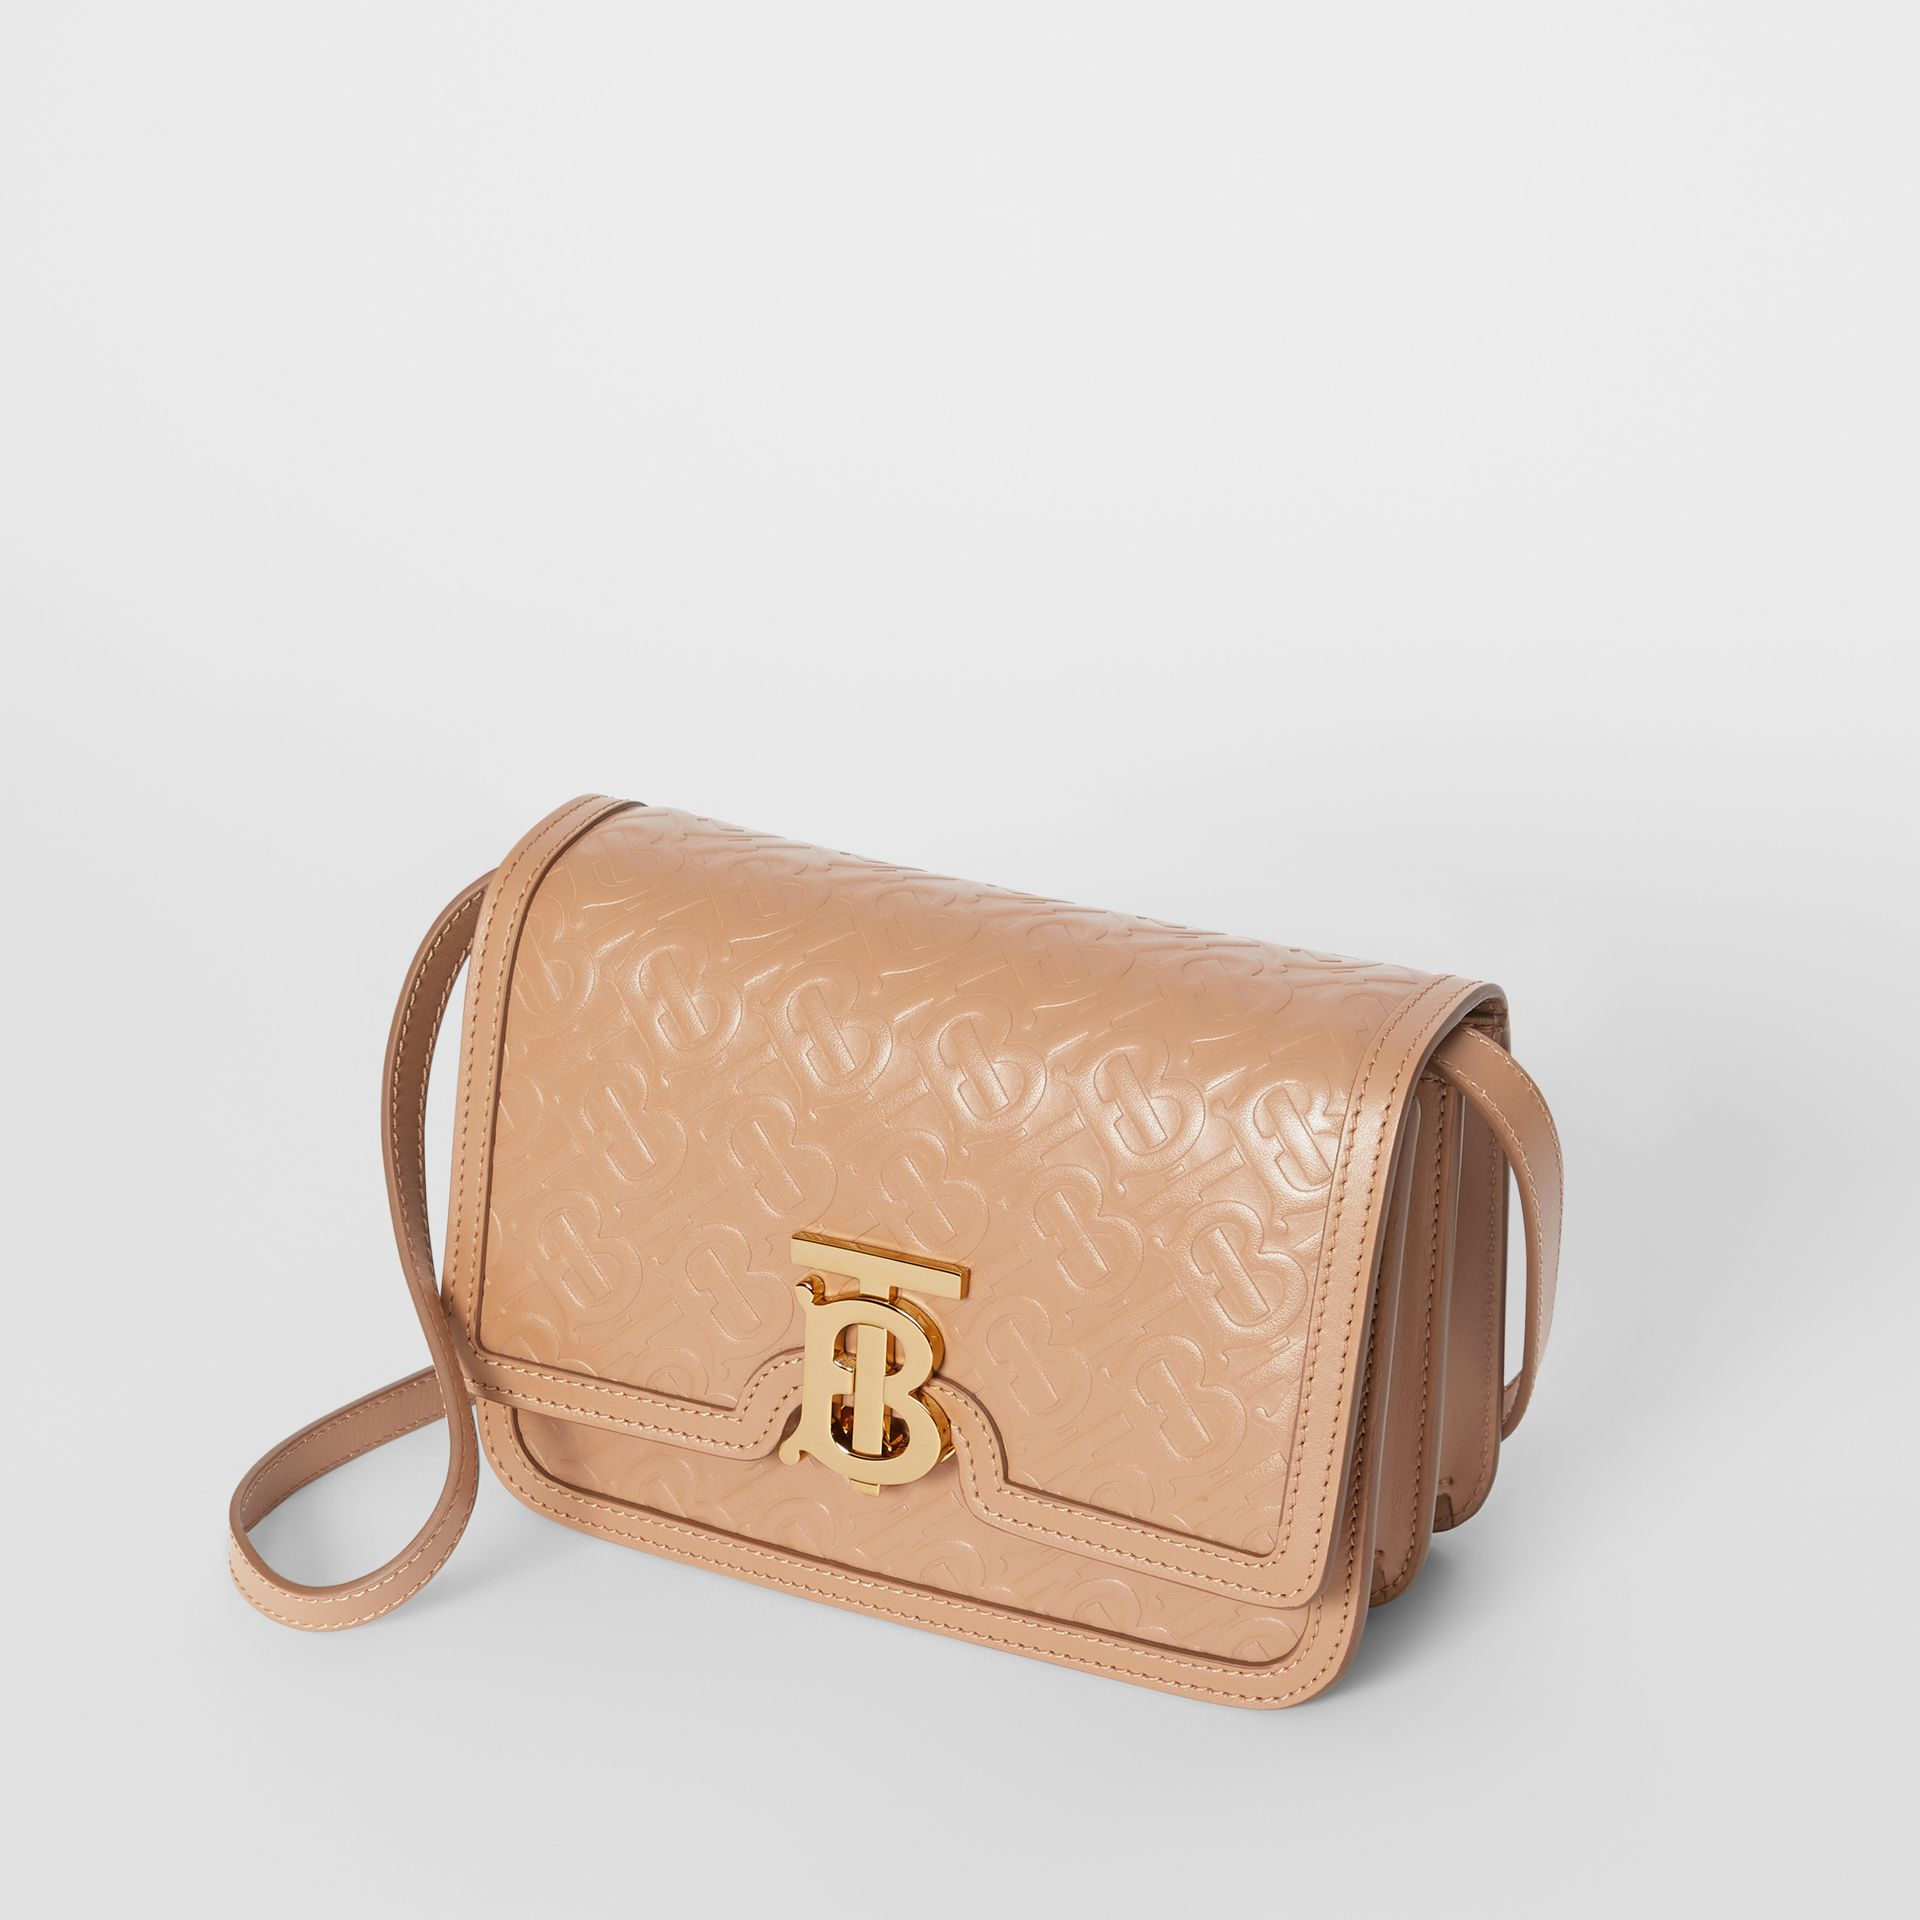 Small Monogram Leather TB Bag in Light Camel - Women | Burberry - gallery image 3